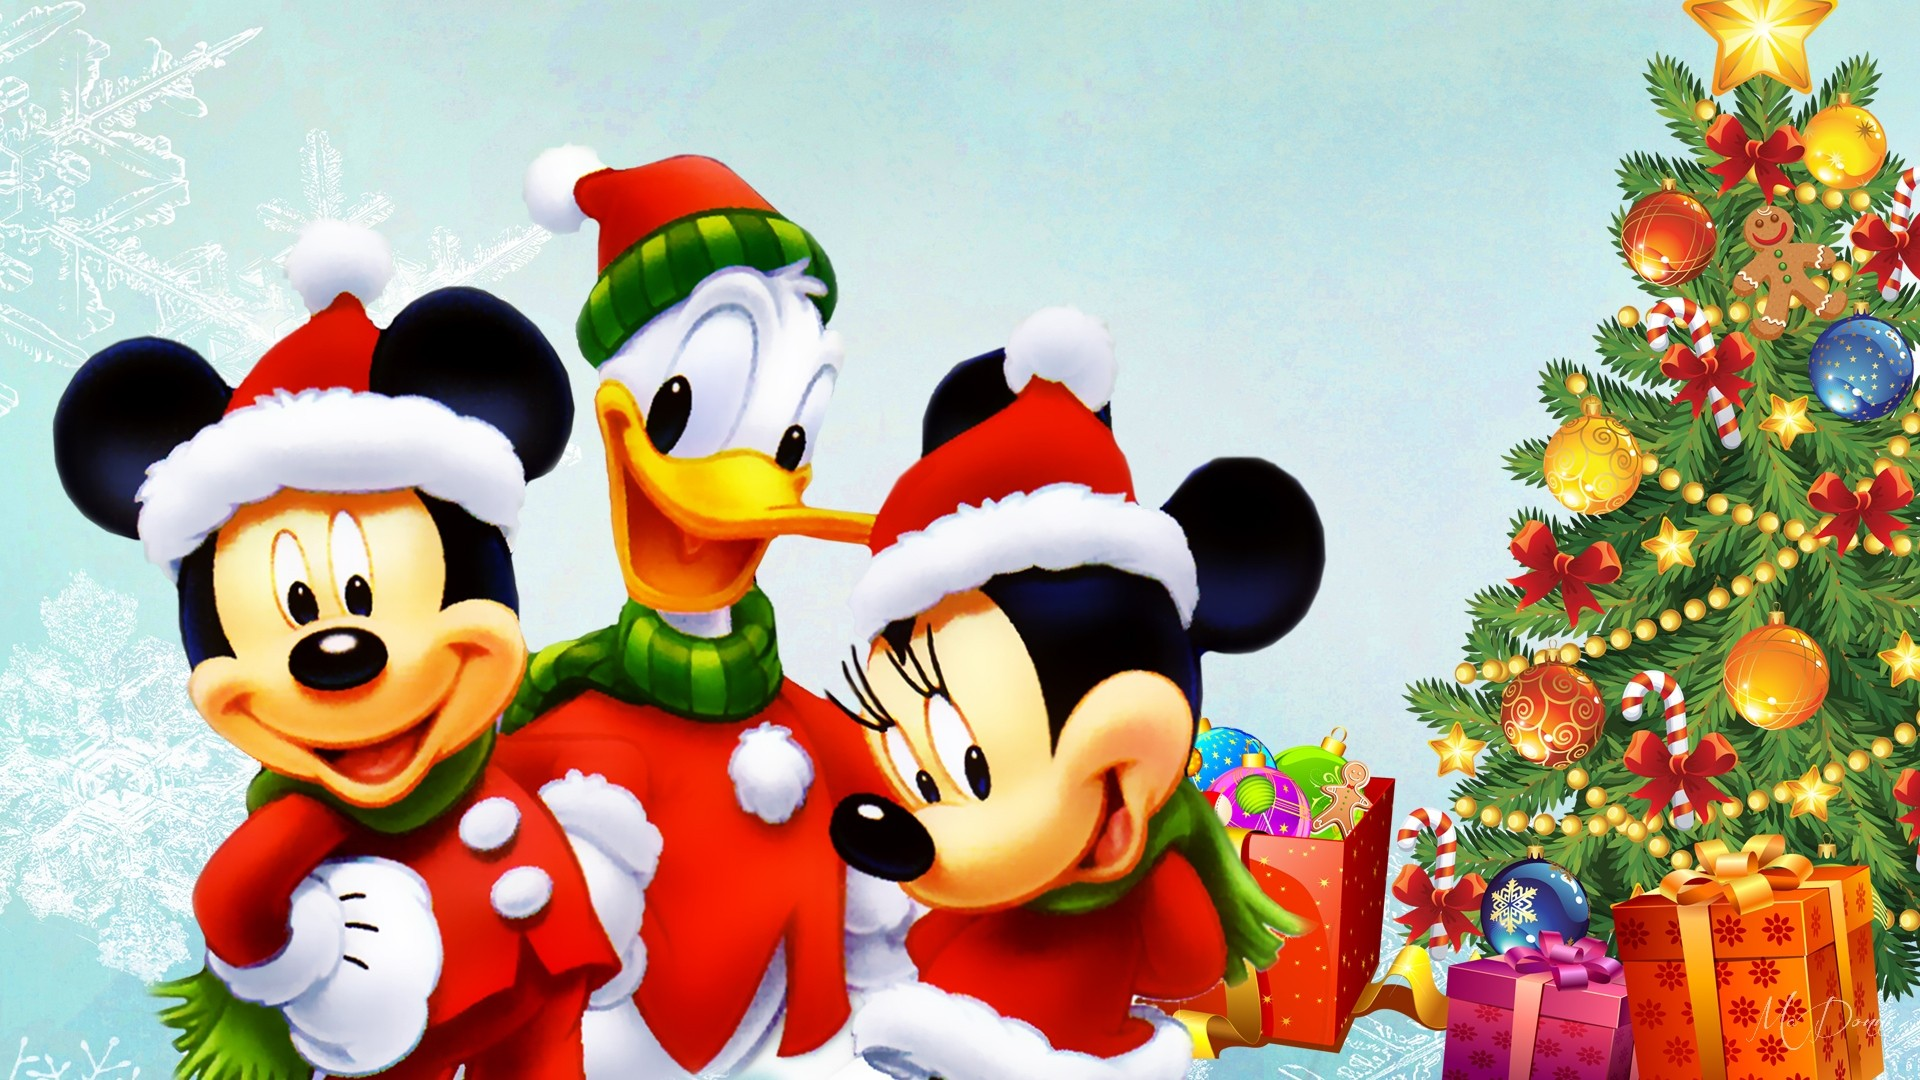 your ultimate disney holiday gift guide mickeyblogcom - Disney Christmas Gifts